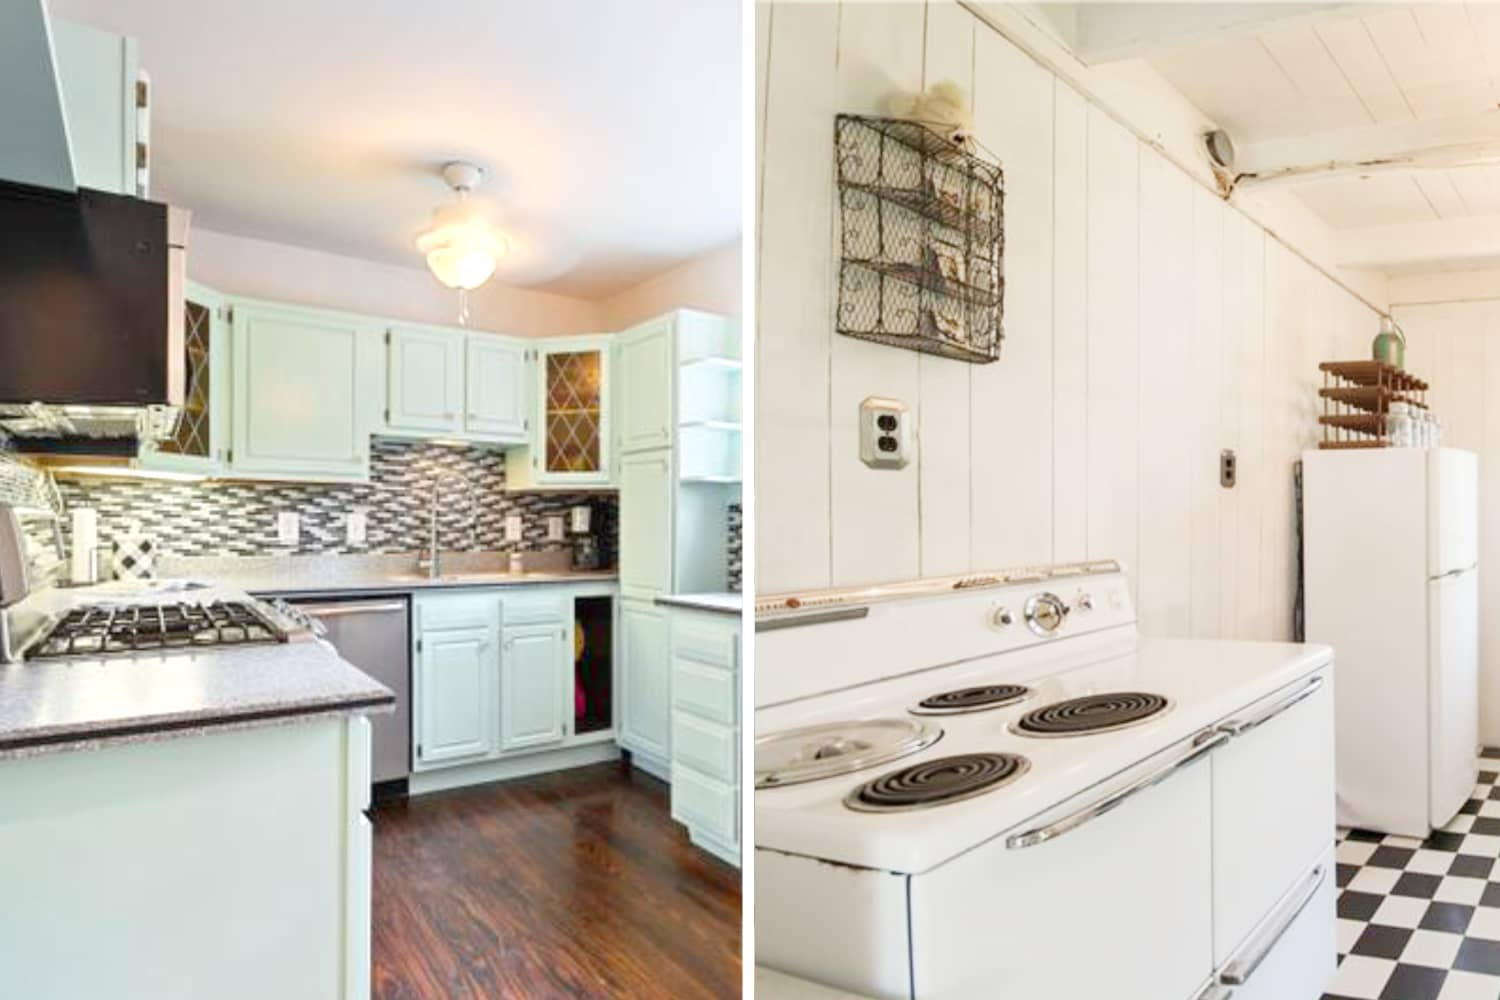 Here's What Kitchens Look Like in Houses That Cost $250,000